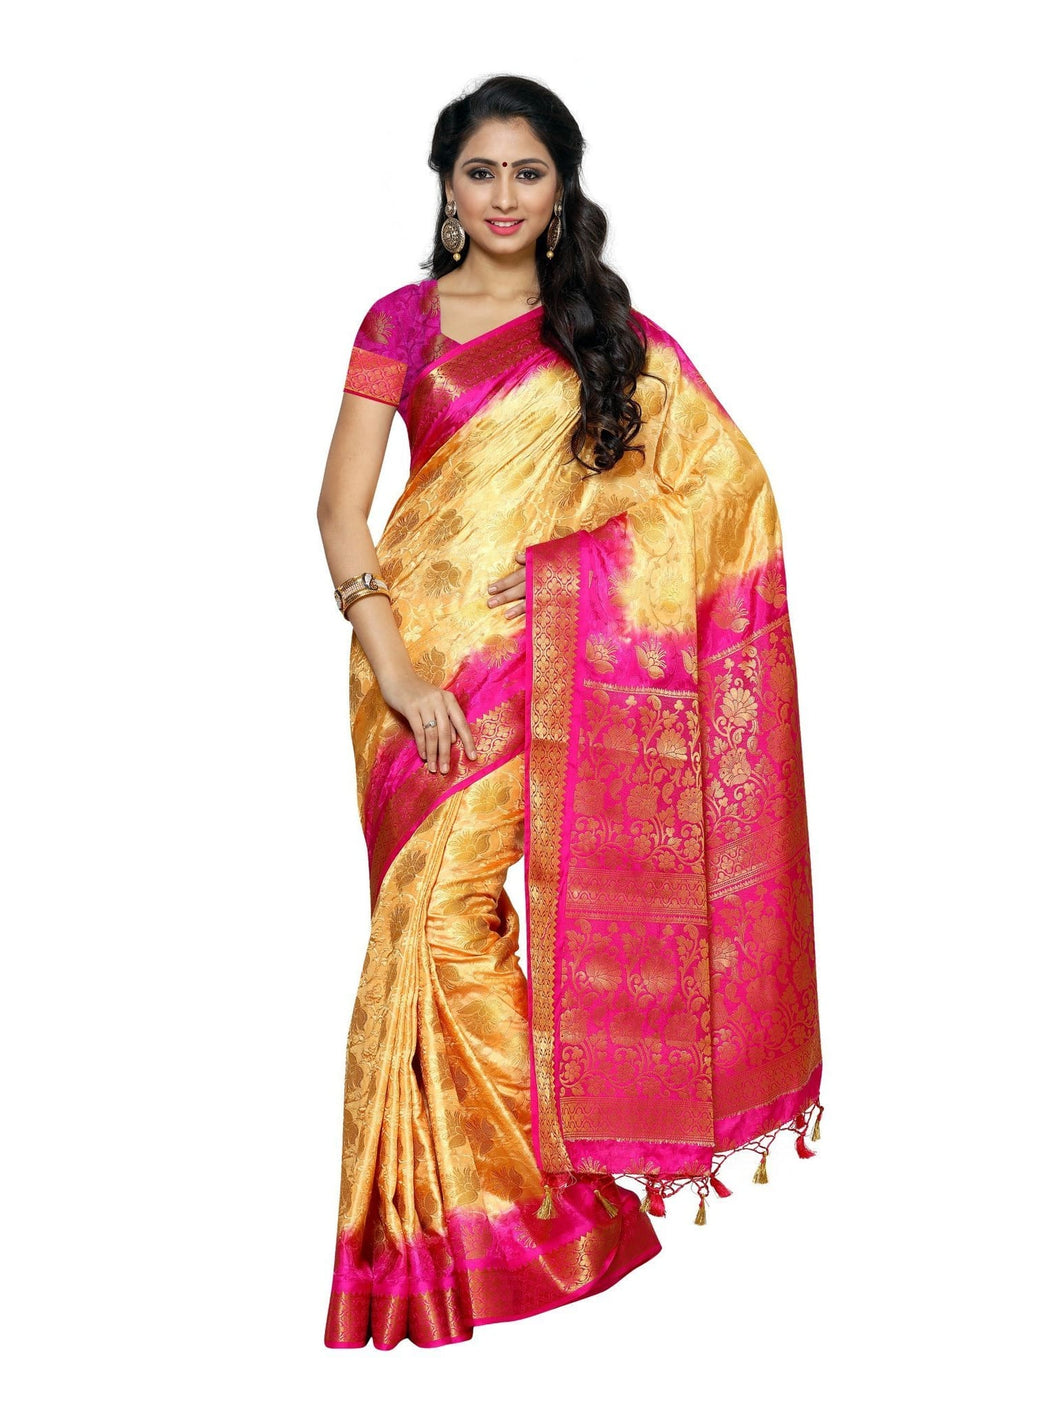 MIMOSA Designer Art Silk Kanjivaram Style Saree with Blouse in Color Chandan (4000-155-2d-cndn-rni) - kupindaindia